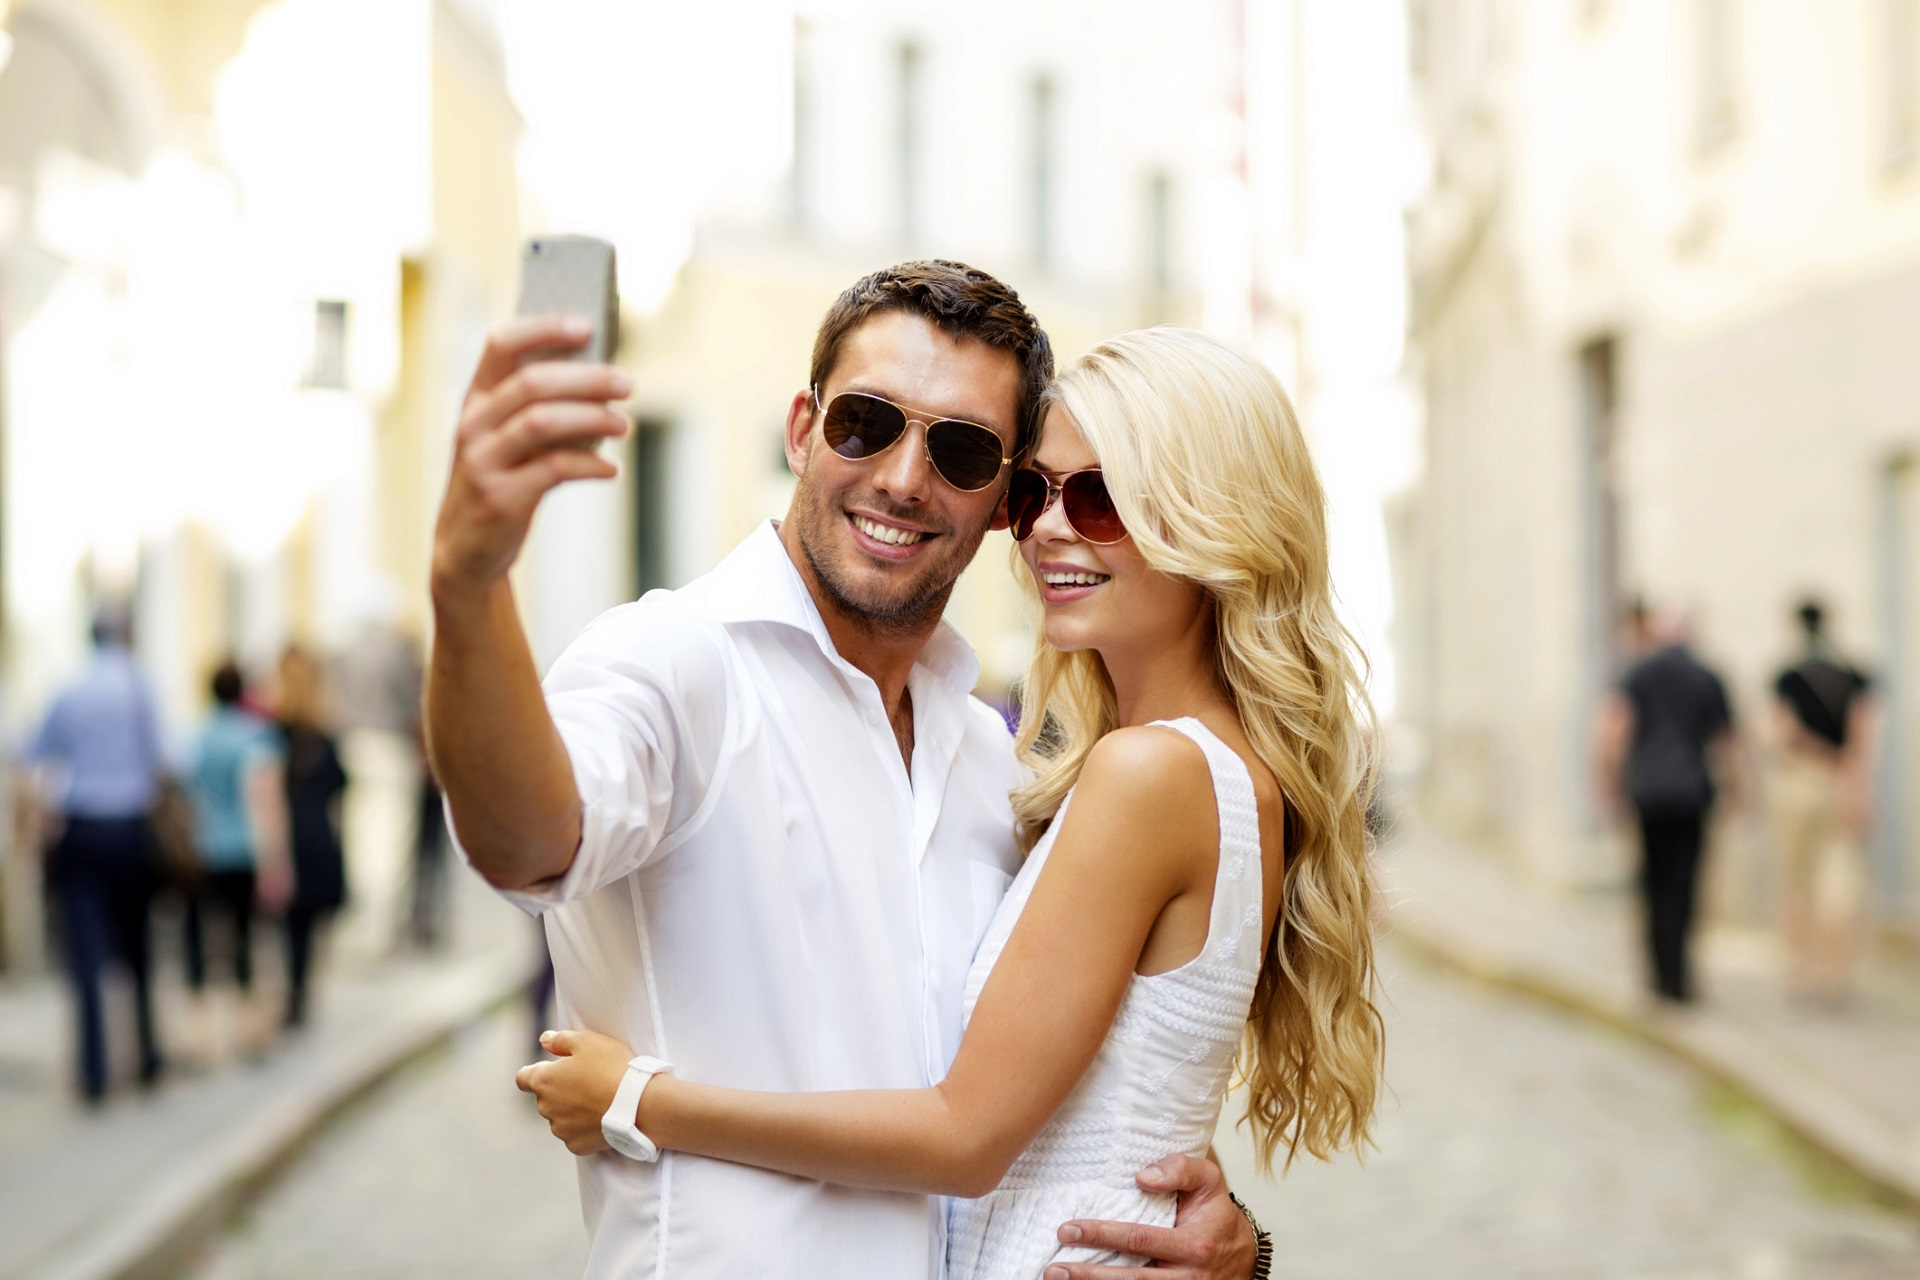 5 Signs Your New Guy Is in Another Relationship